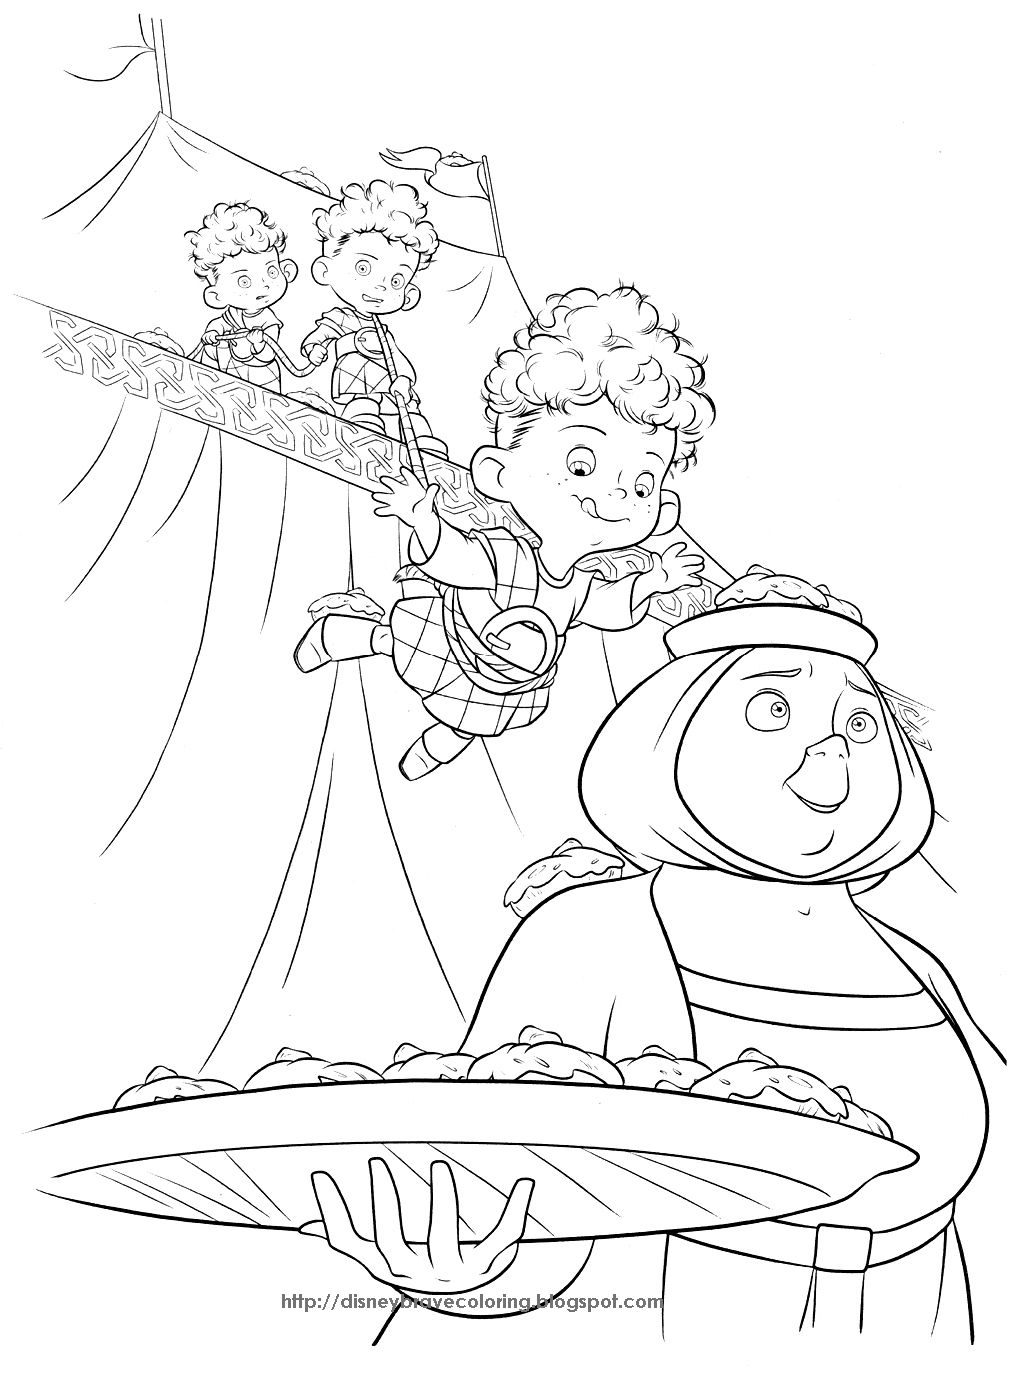 Princess coloring pages blogspot - Explore Princess Coloring Pages And More Image From Http 2 Bp Blogspot Com Vgxau23nnxs